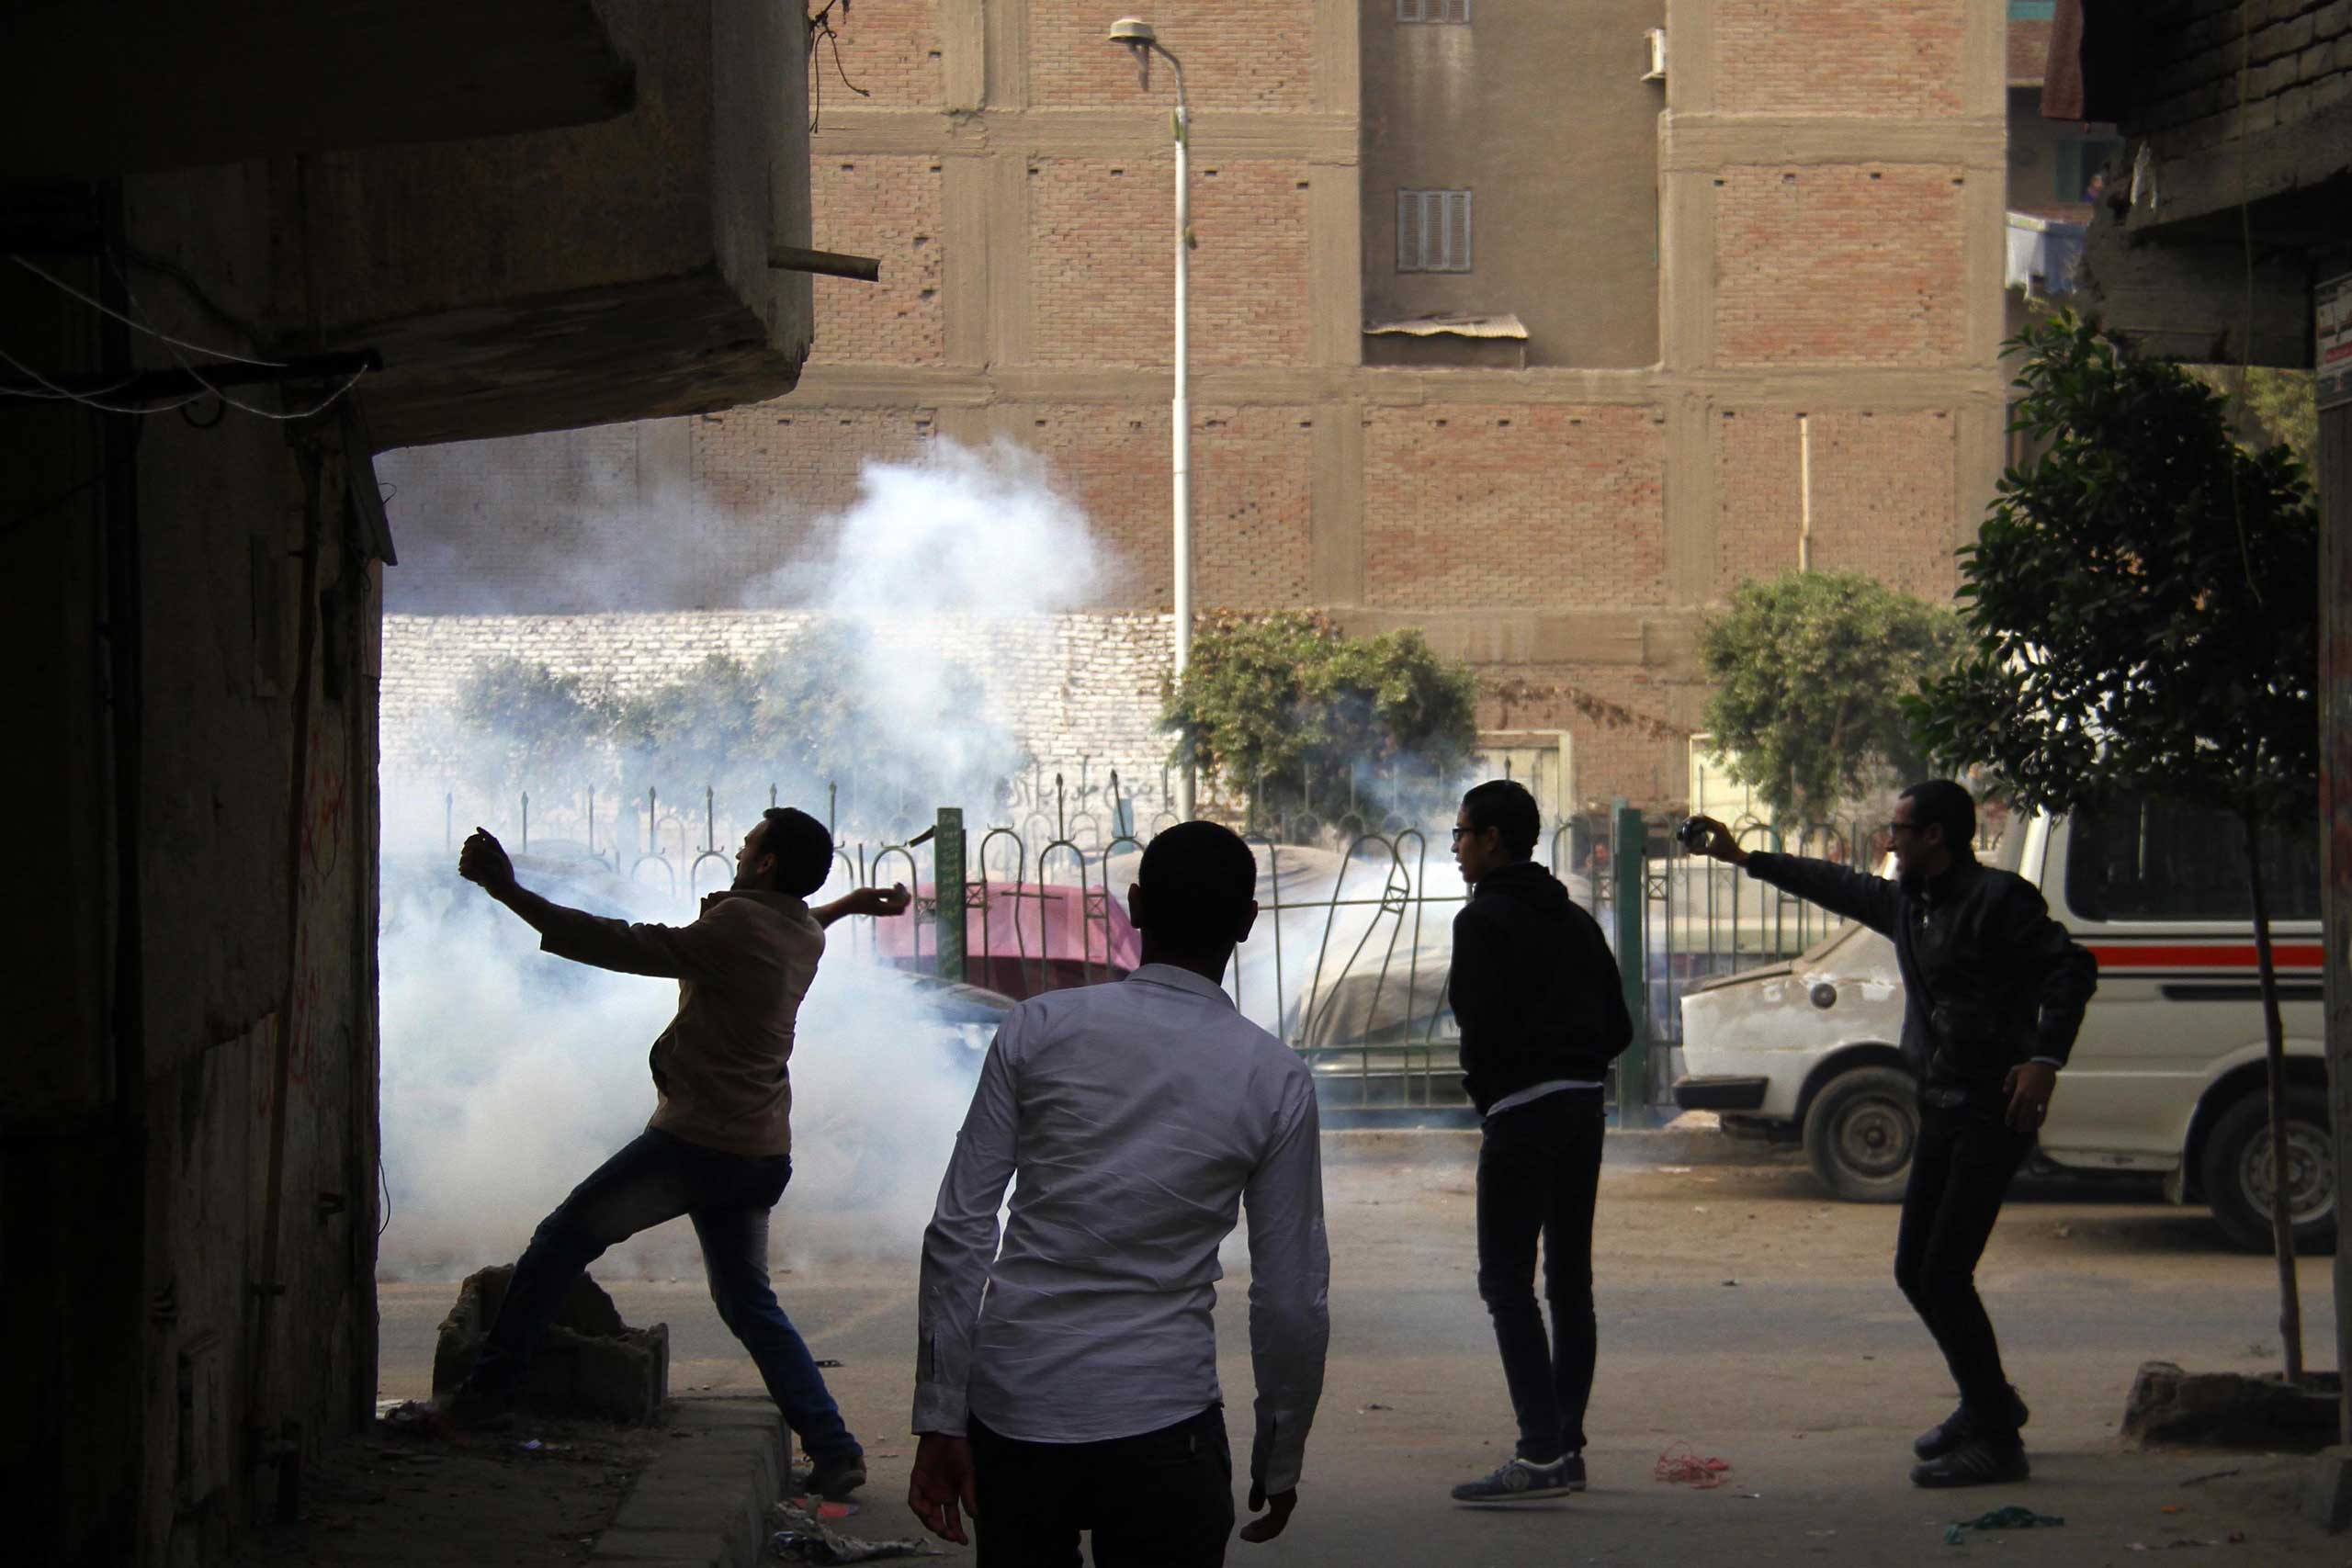 Supporters of Egypt's ousted President Mohamed Morsi are seen in clashes with the police during a demonstration in the district of Matariyah, eastern Cairo on Jan. 25, 2015,